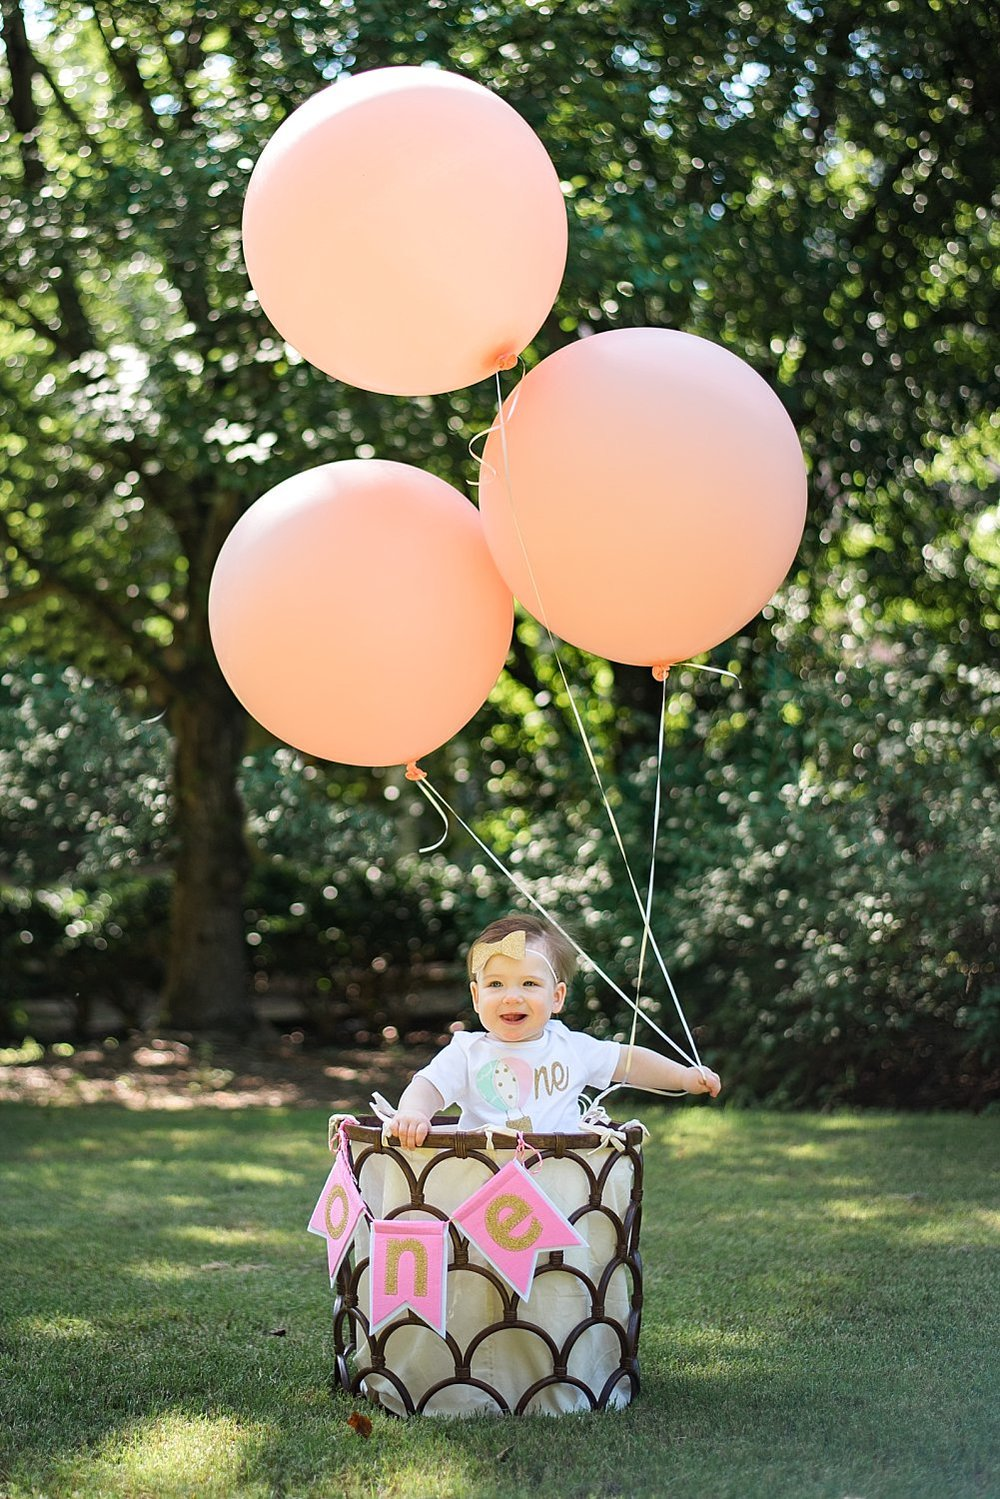 Baby girl in basket with balloons